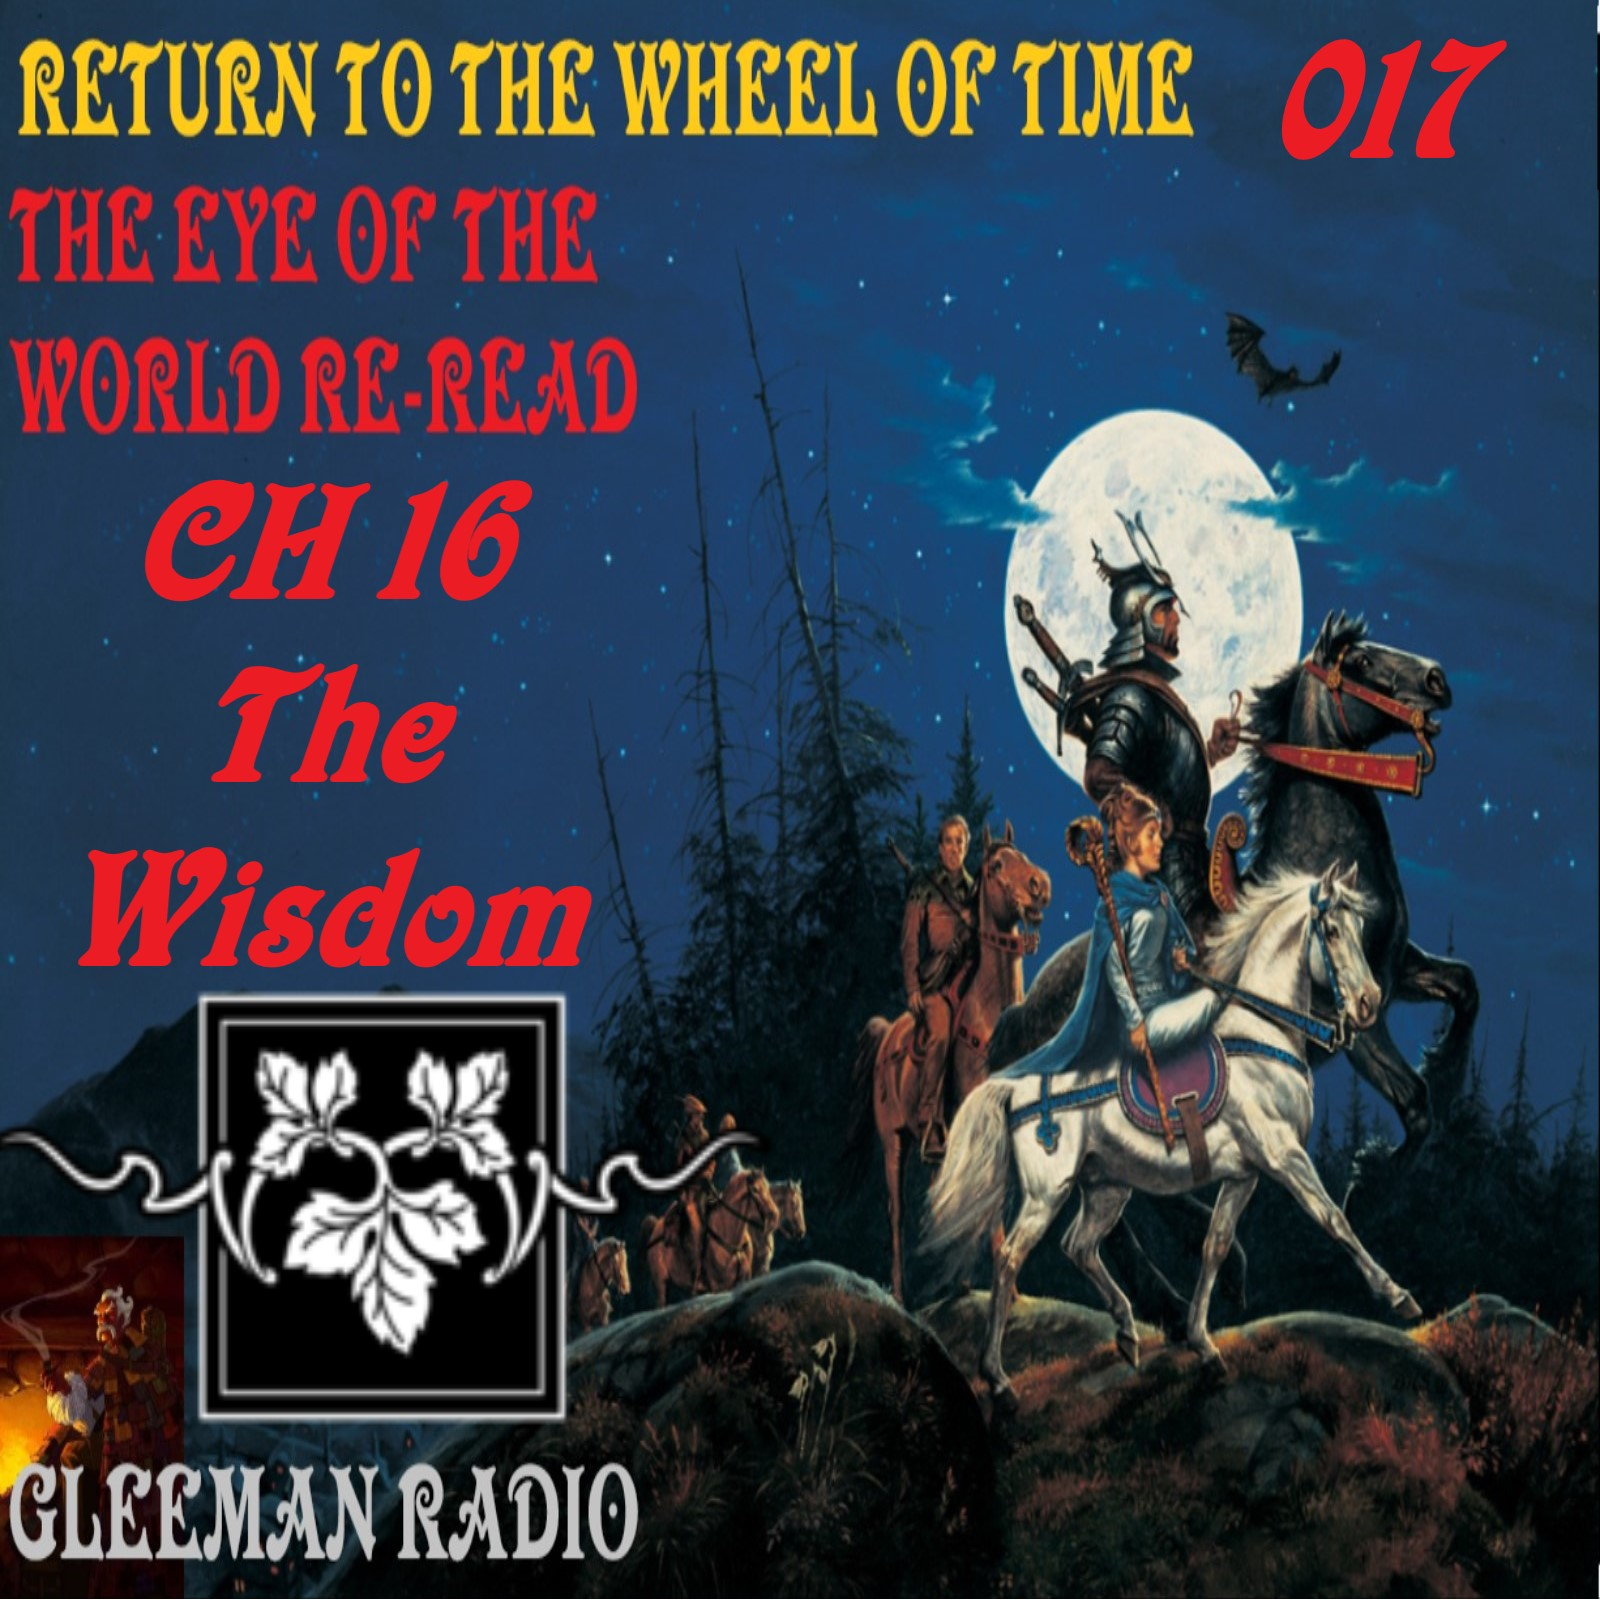 CH 16 The Wisdom - The Eye of the World Re-Read - Return to The Wheel of Time Podcast Ep. 017